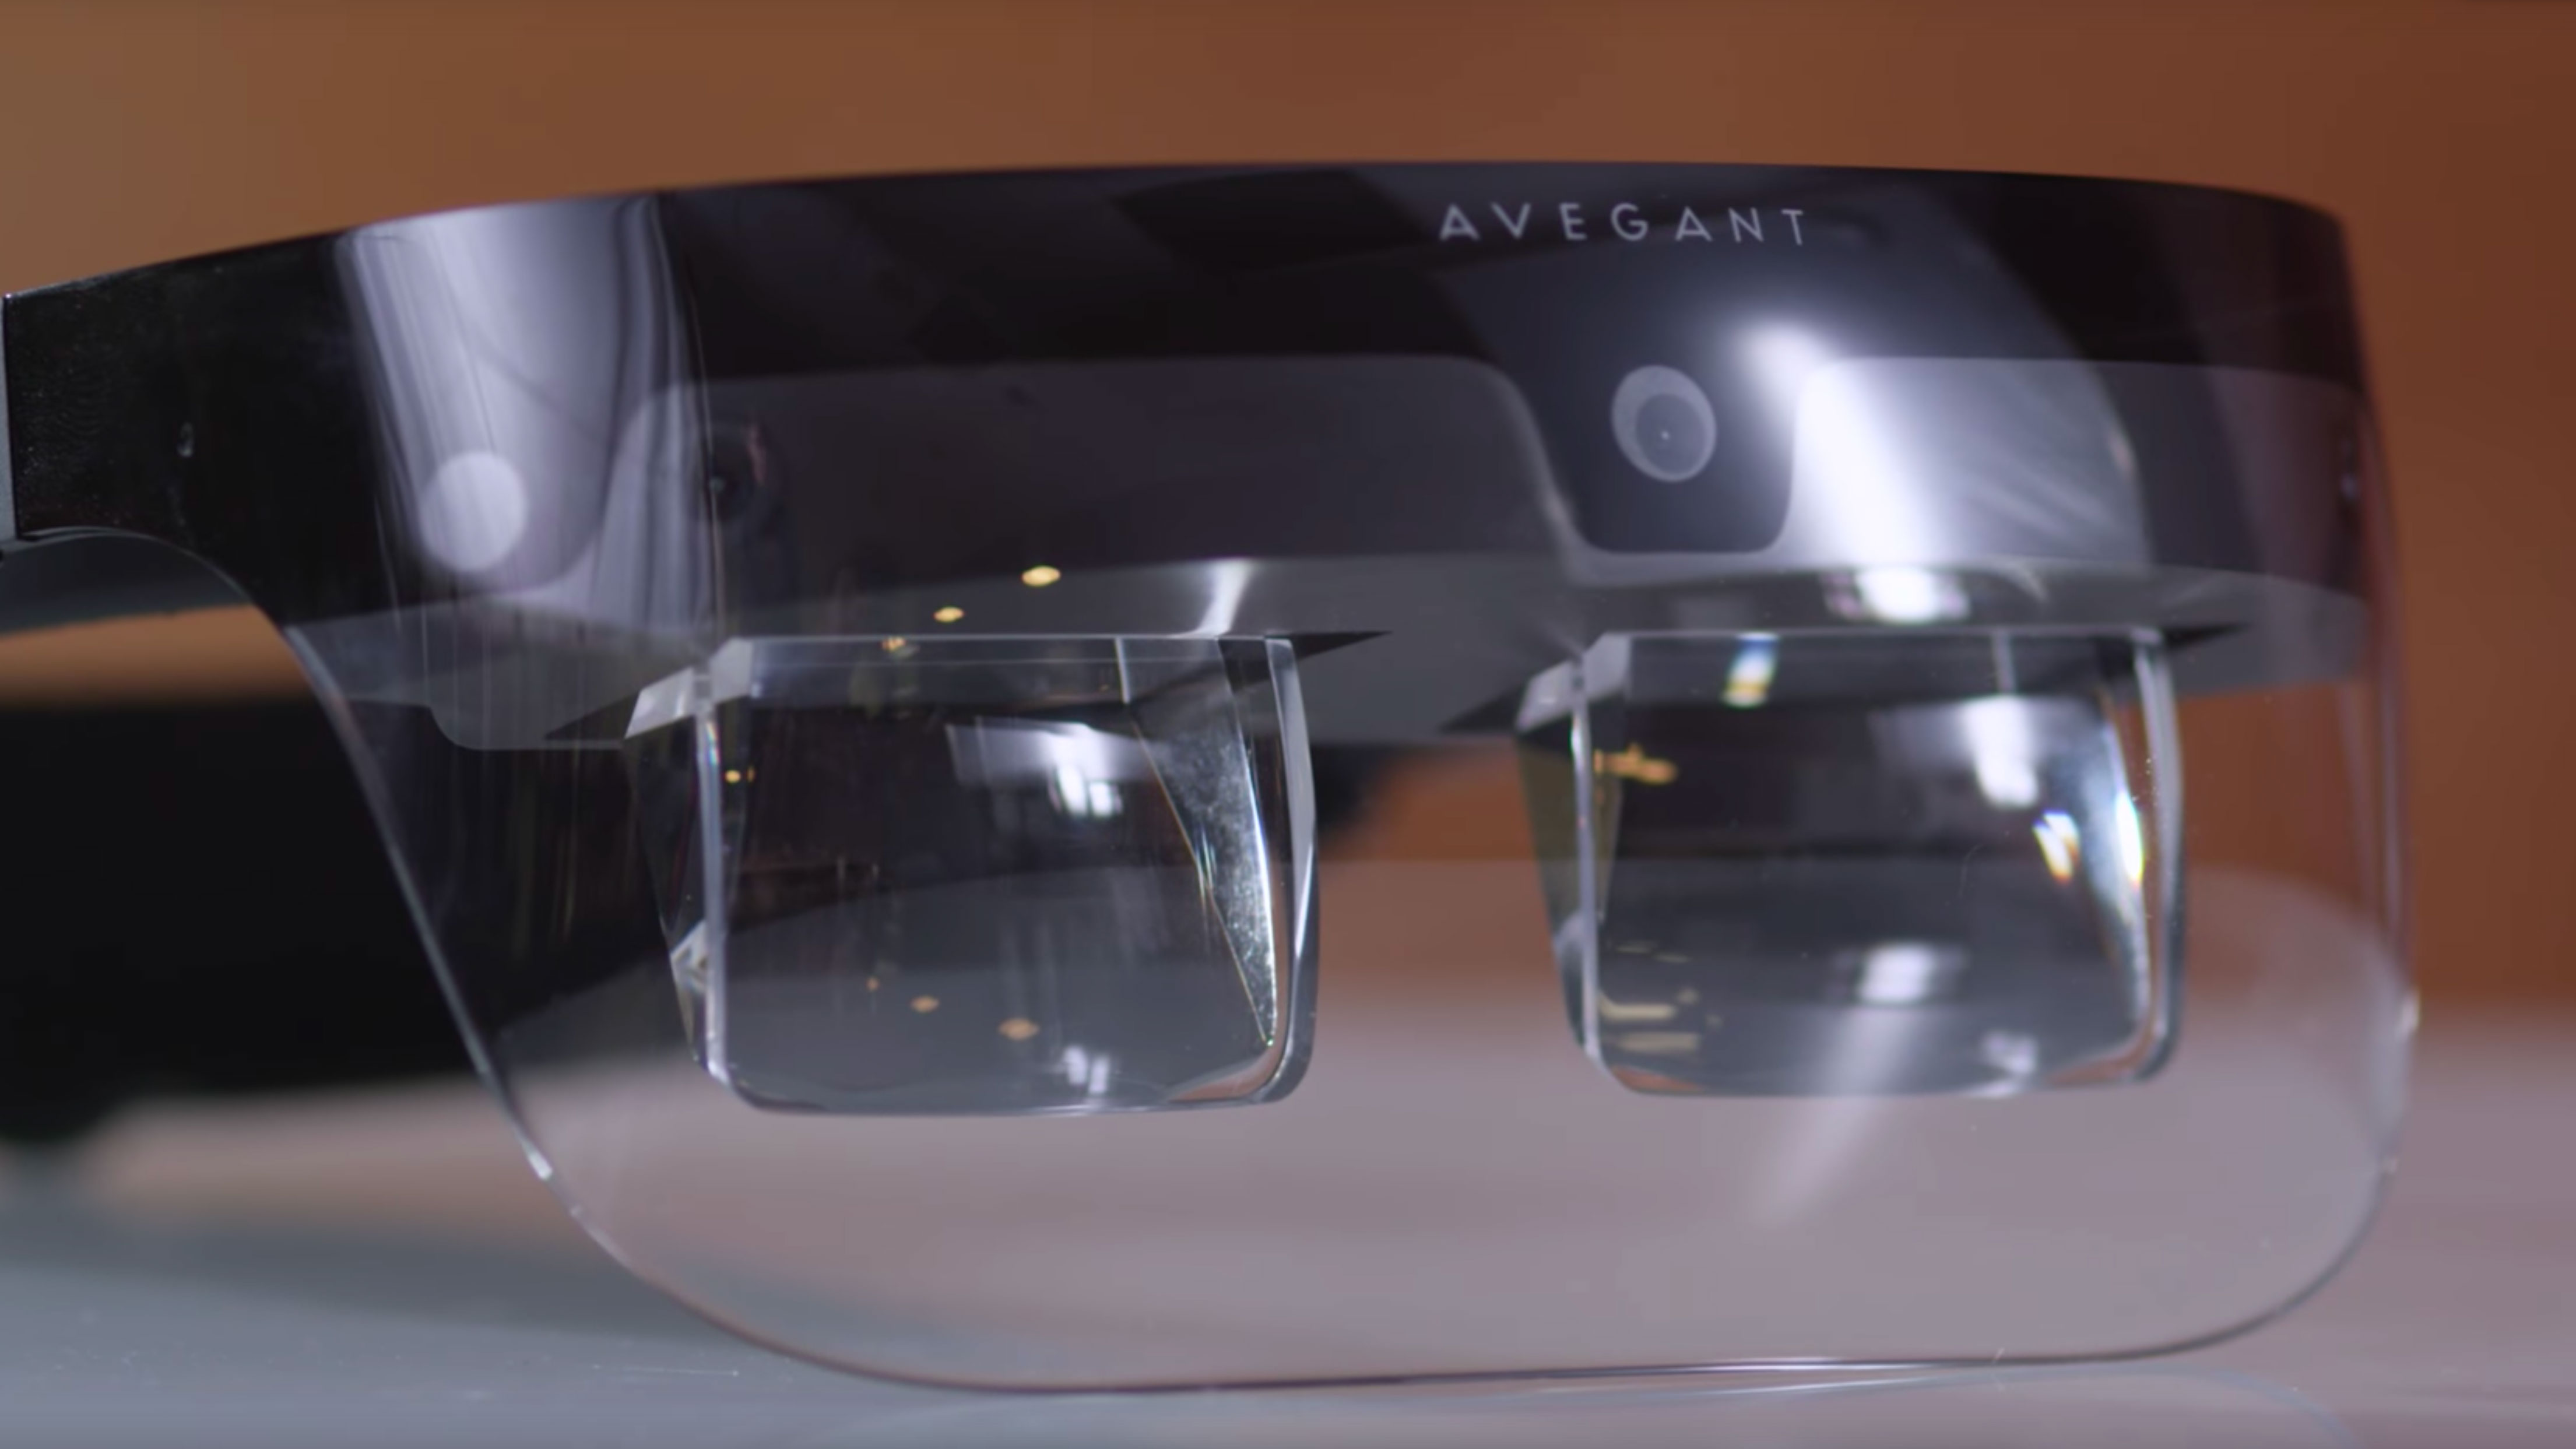 Avegant's developing an augmented-reality headset that it says uses light-field technology and can be easily manufactured.